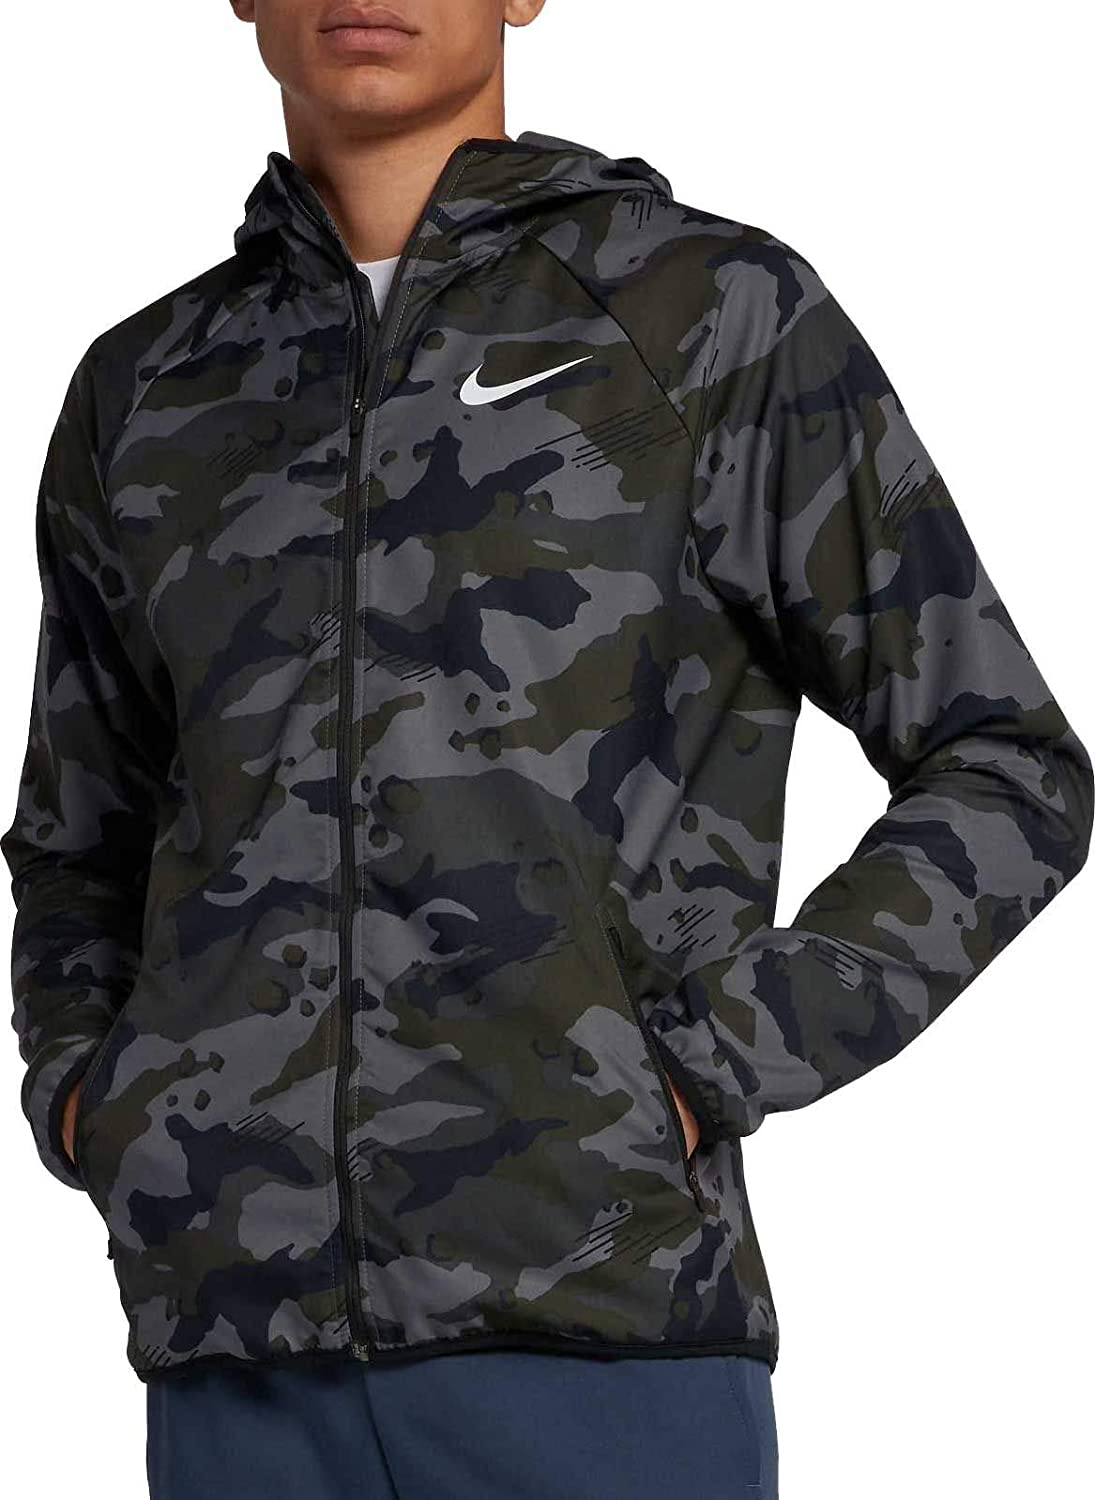 catch a cold square second  Nike Mens Dry Woven Camo Training Jacket (Dark Grey/White/Small):  Amazon.ca: Sports & Outdoors